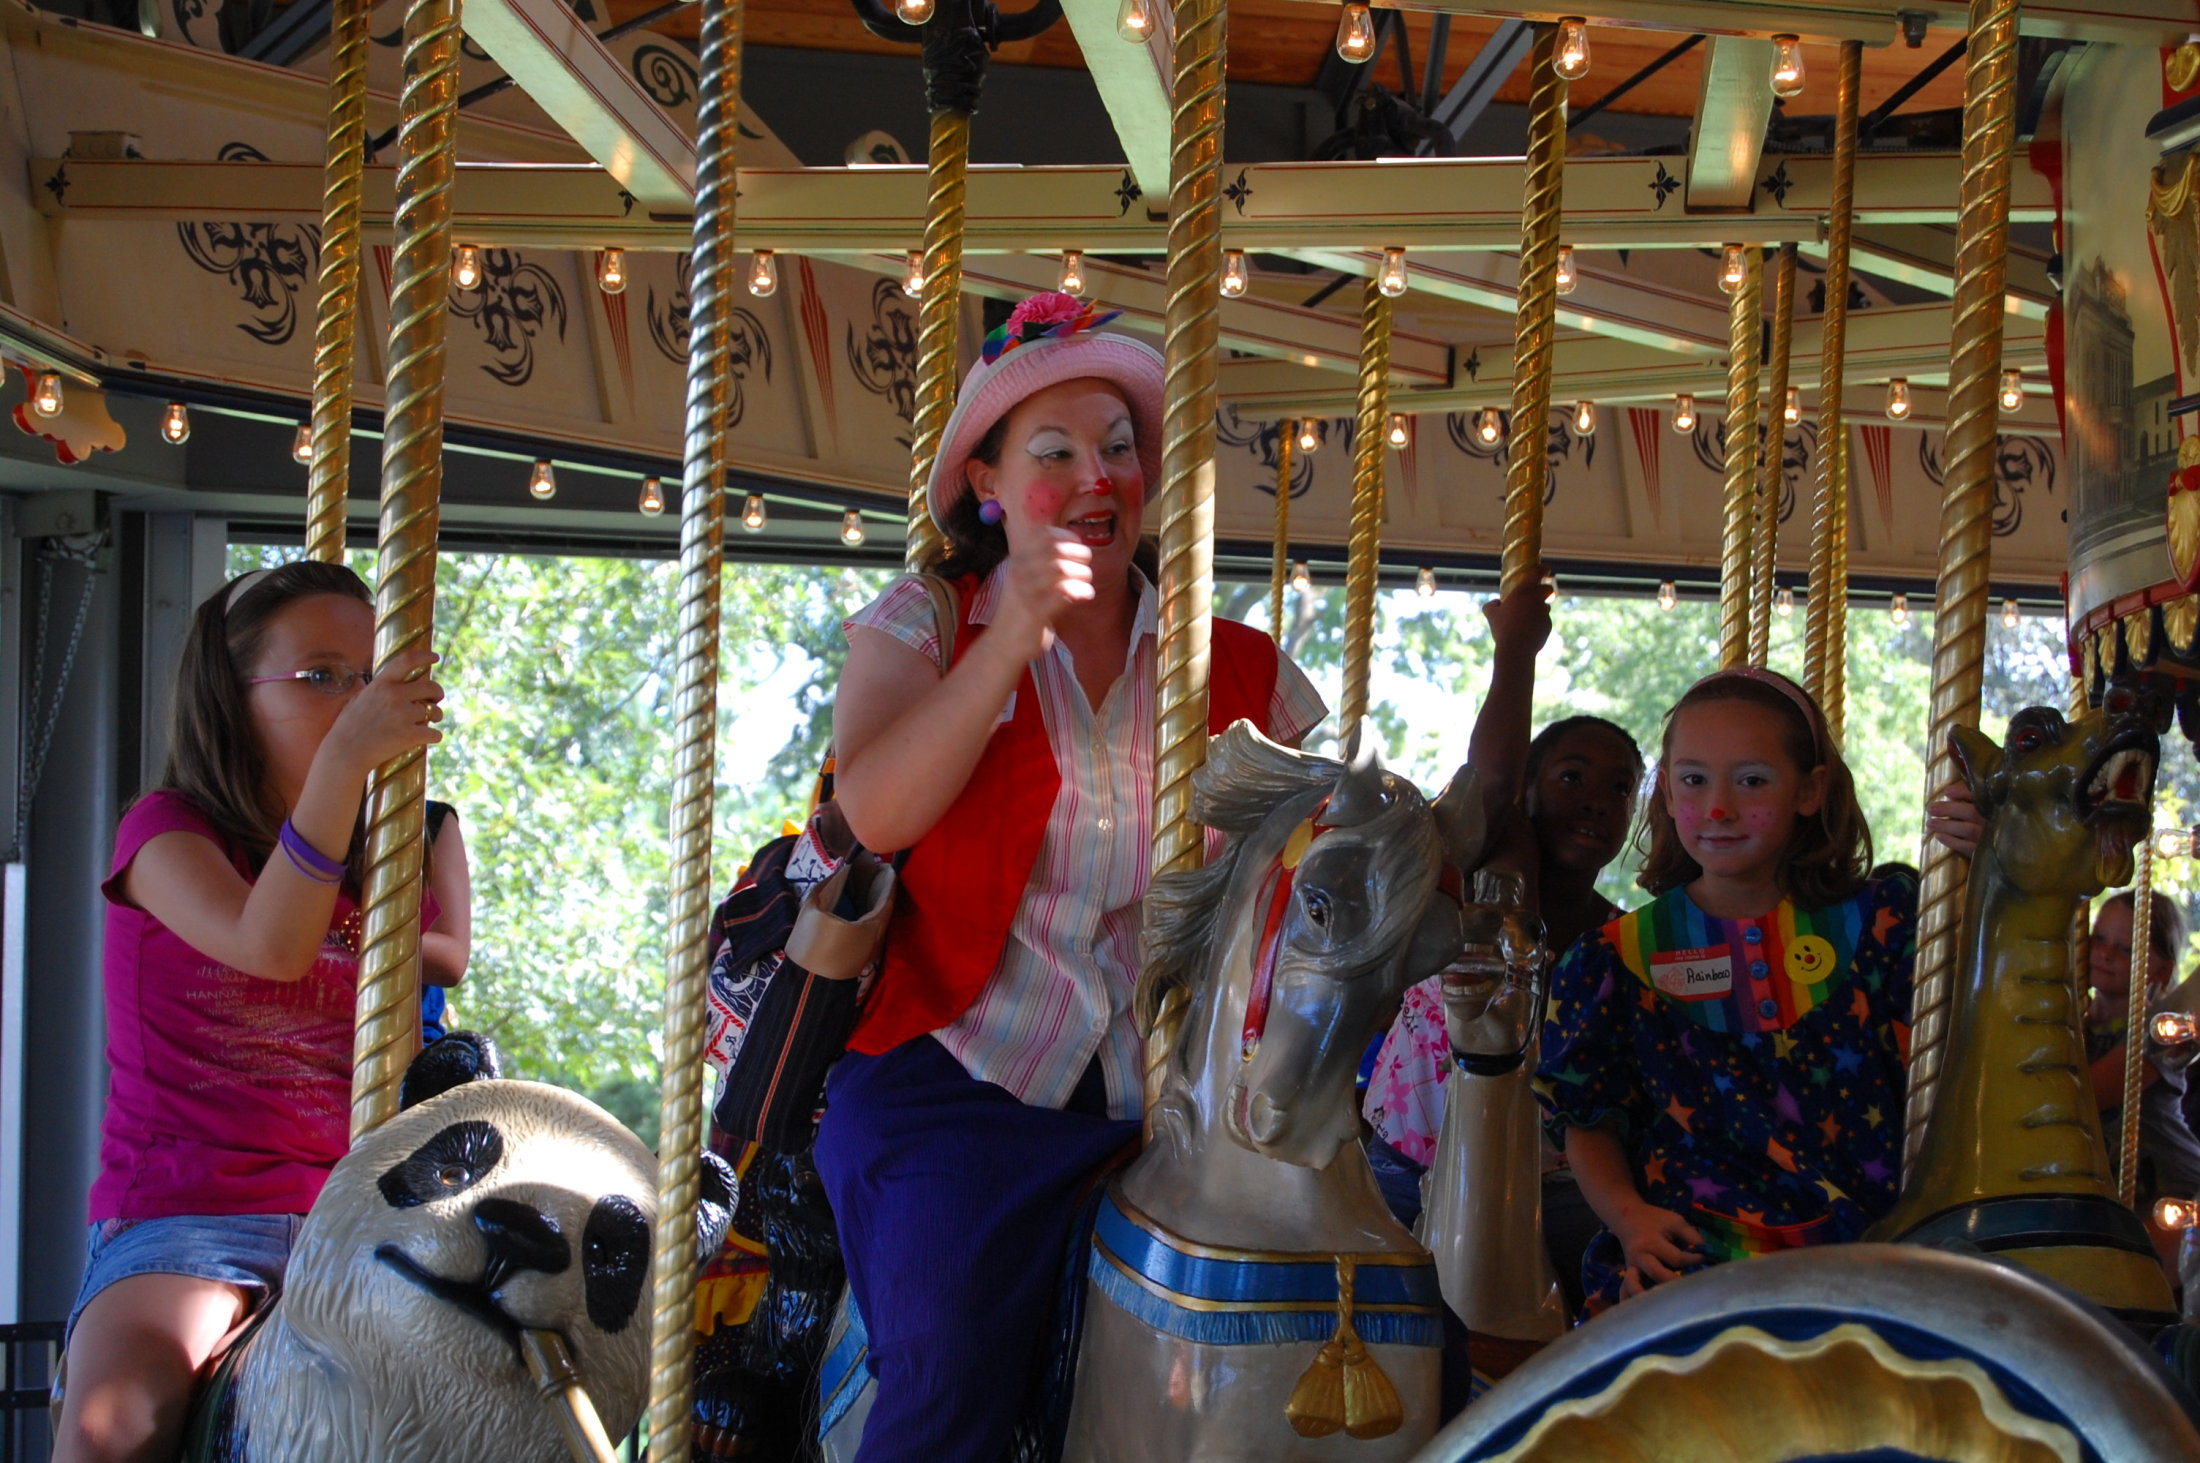 Clowns At The Carousel 2010 (021)